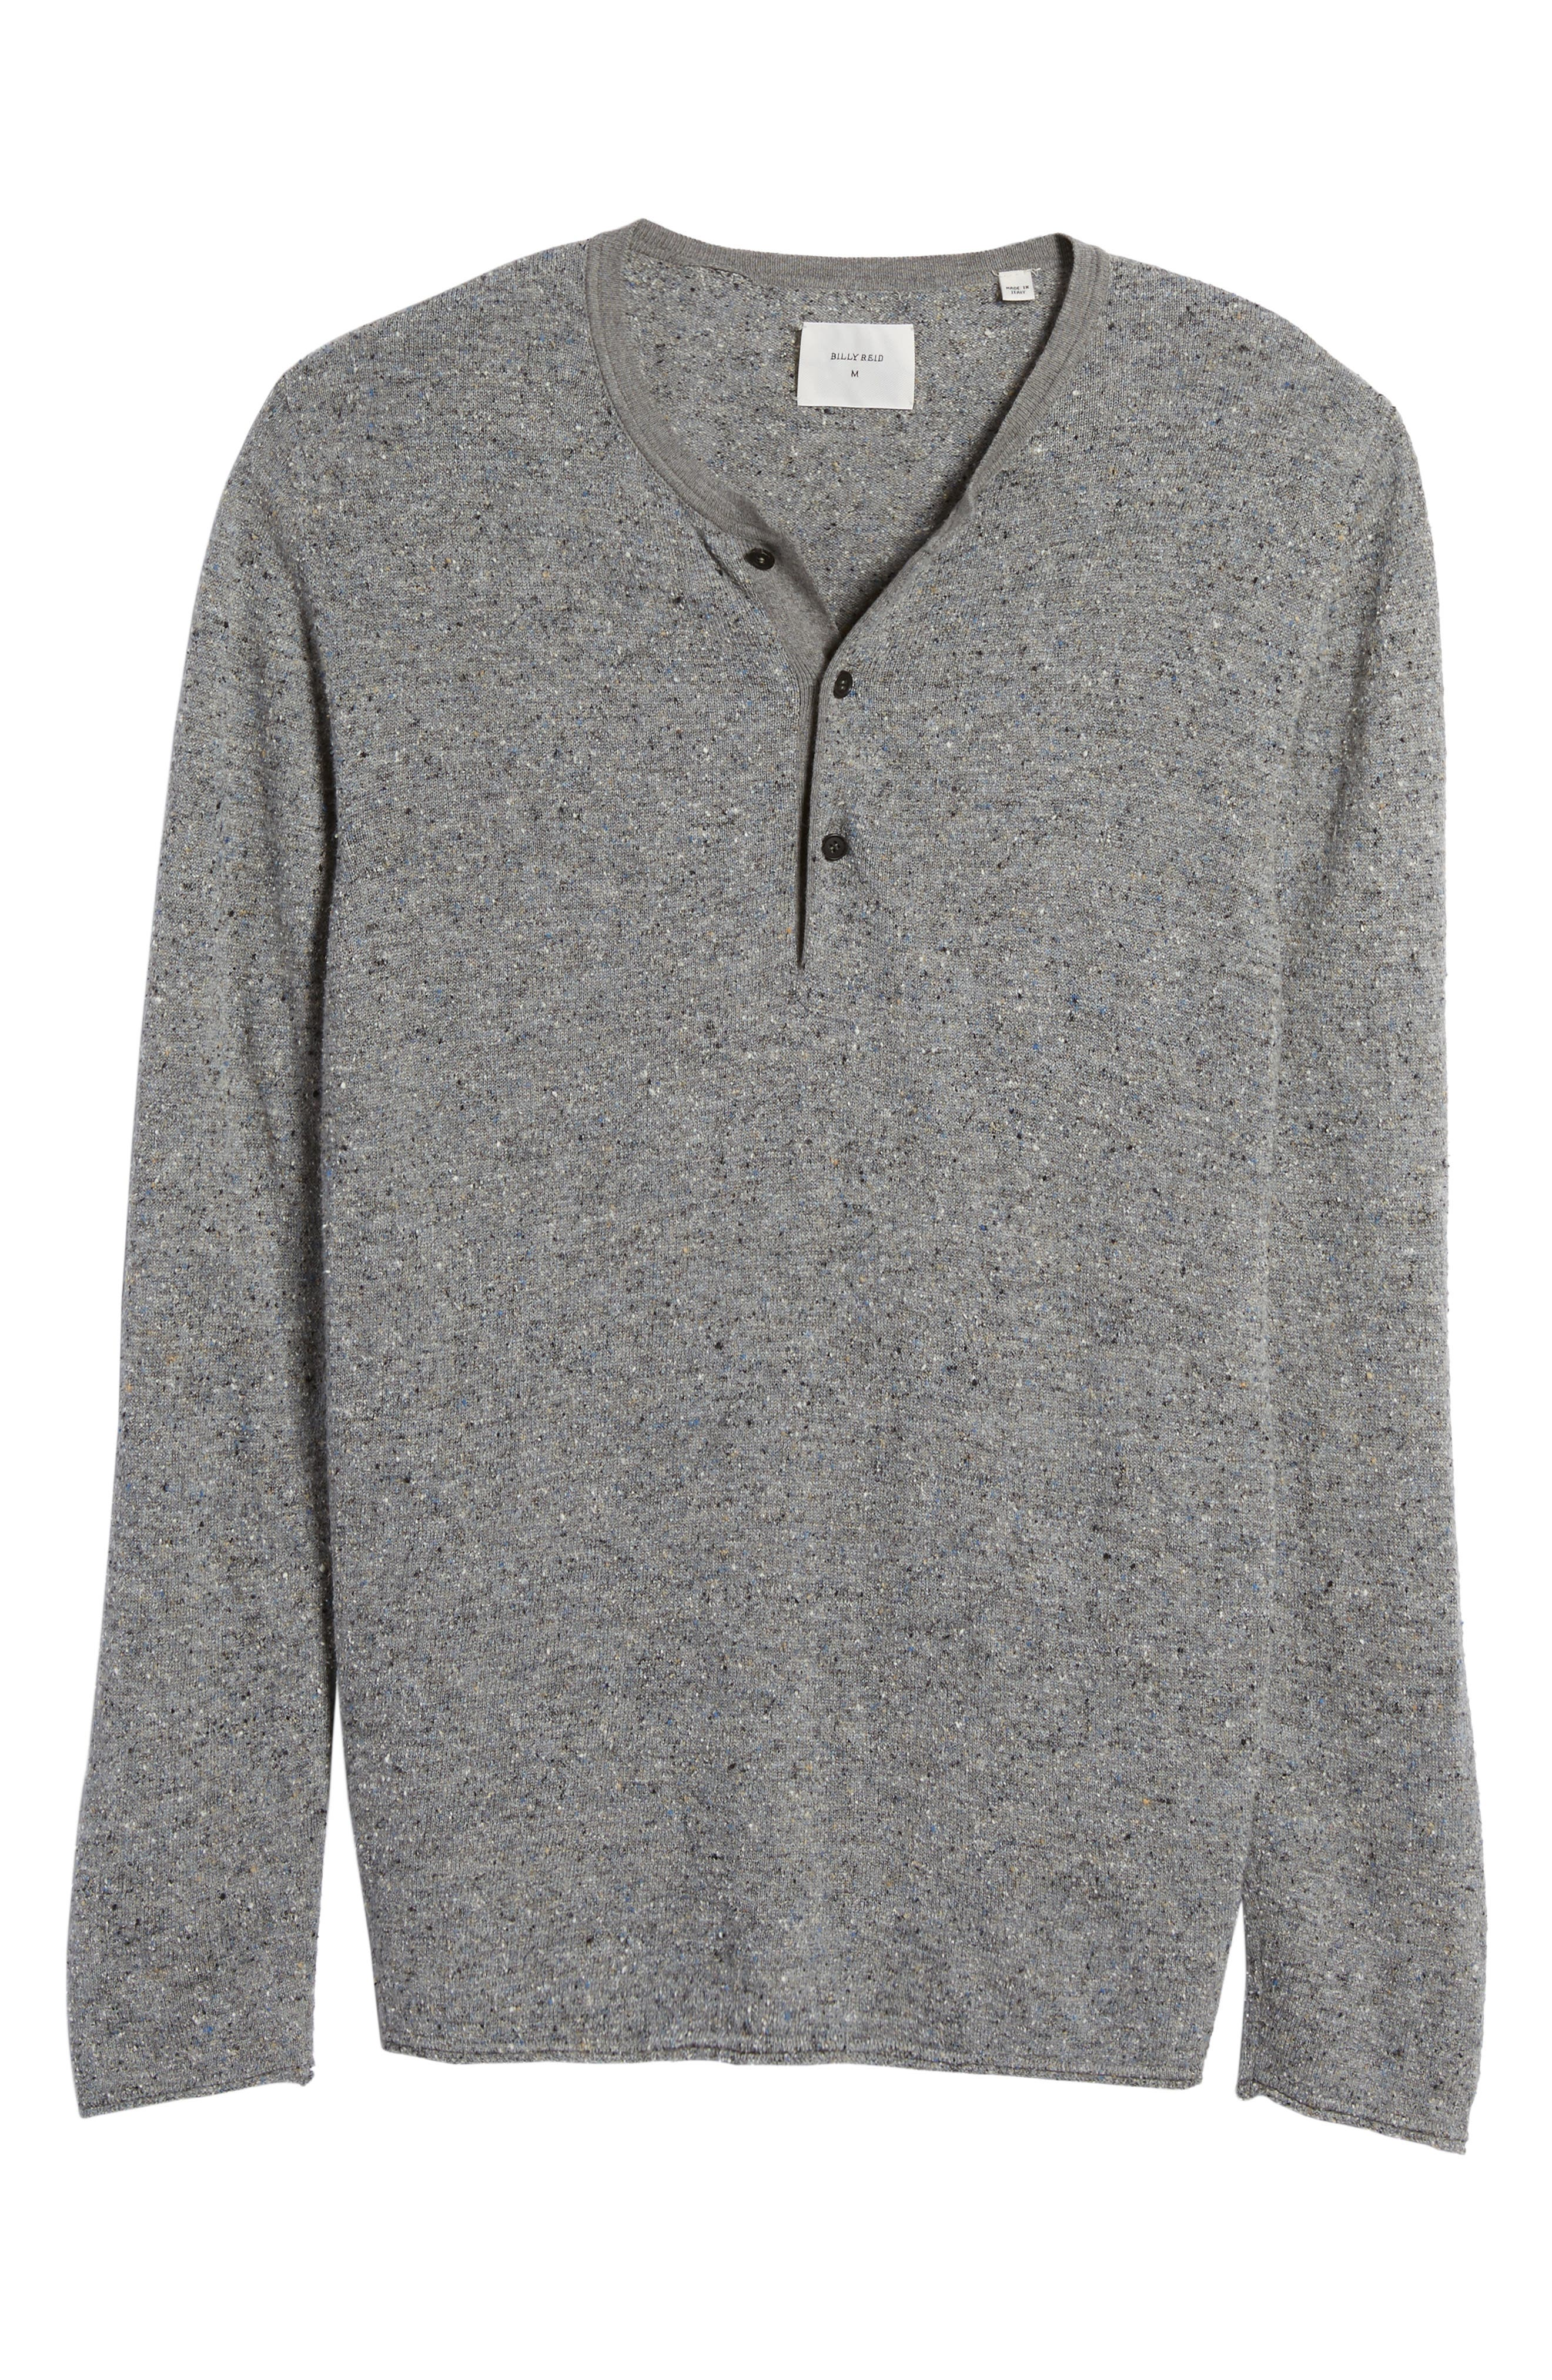 Speckled Henley Sweater,                             Alternate thumbnail 6, color,                             Grey Mix